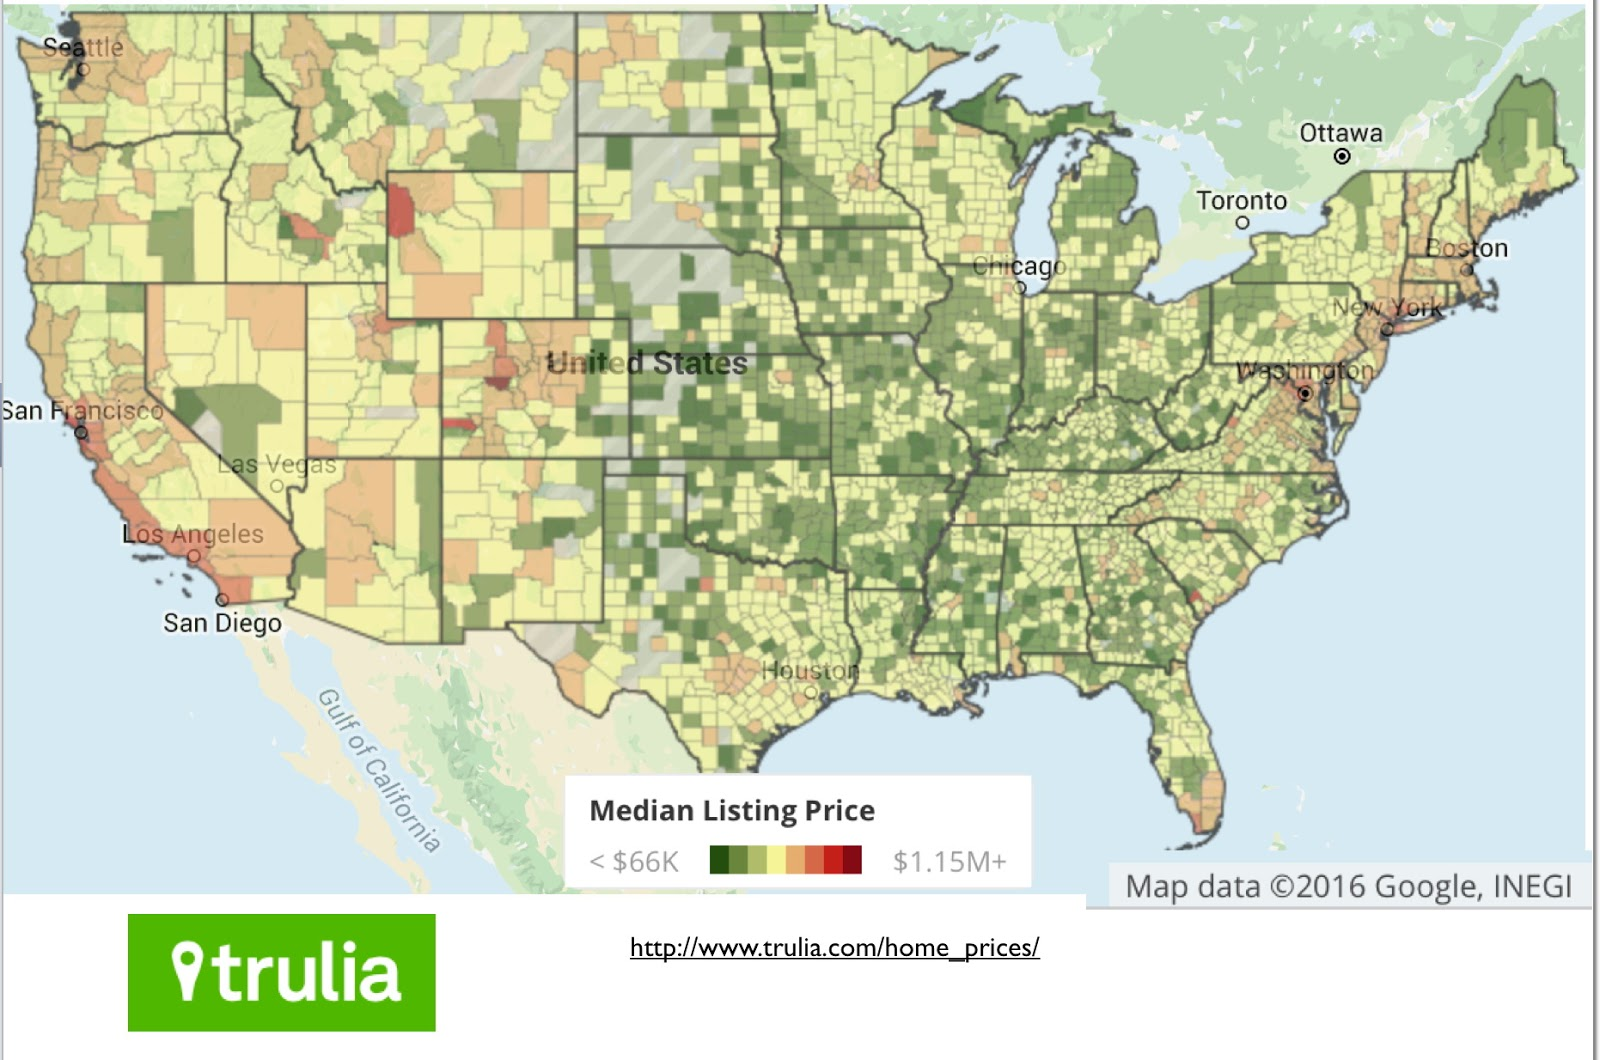 Mapping the extraordinary cost of homes in U.S.